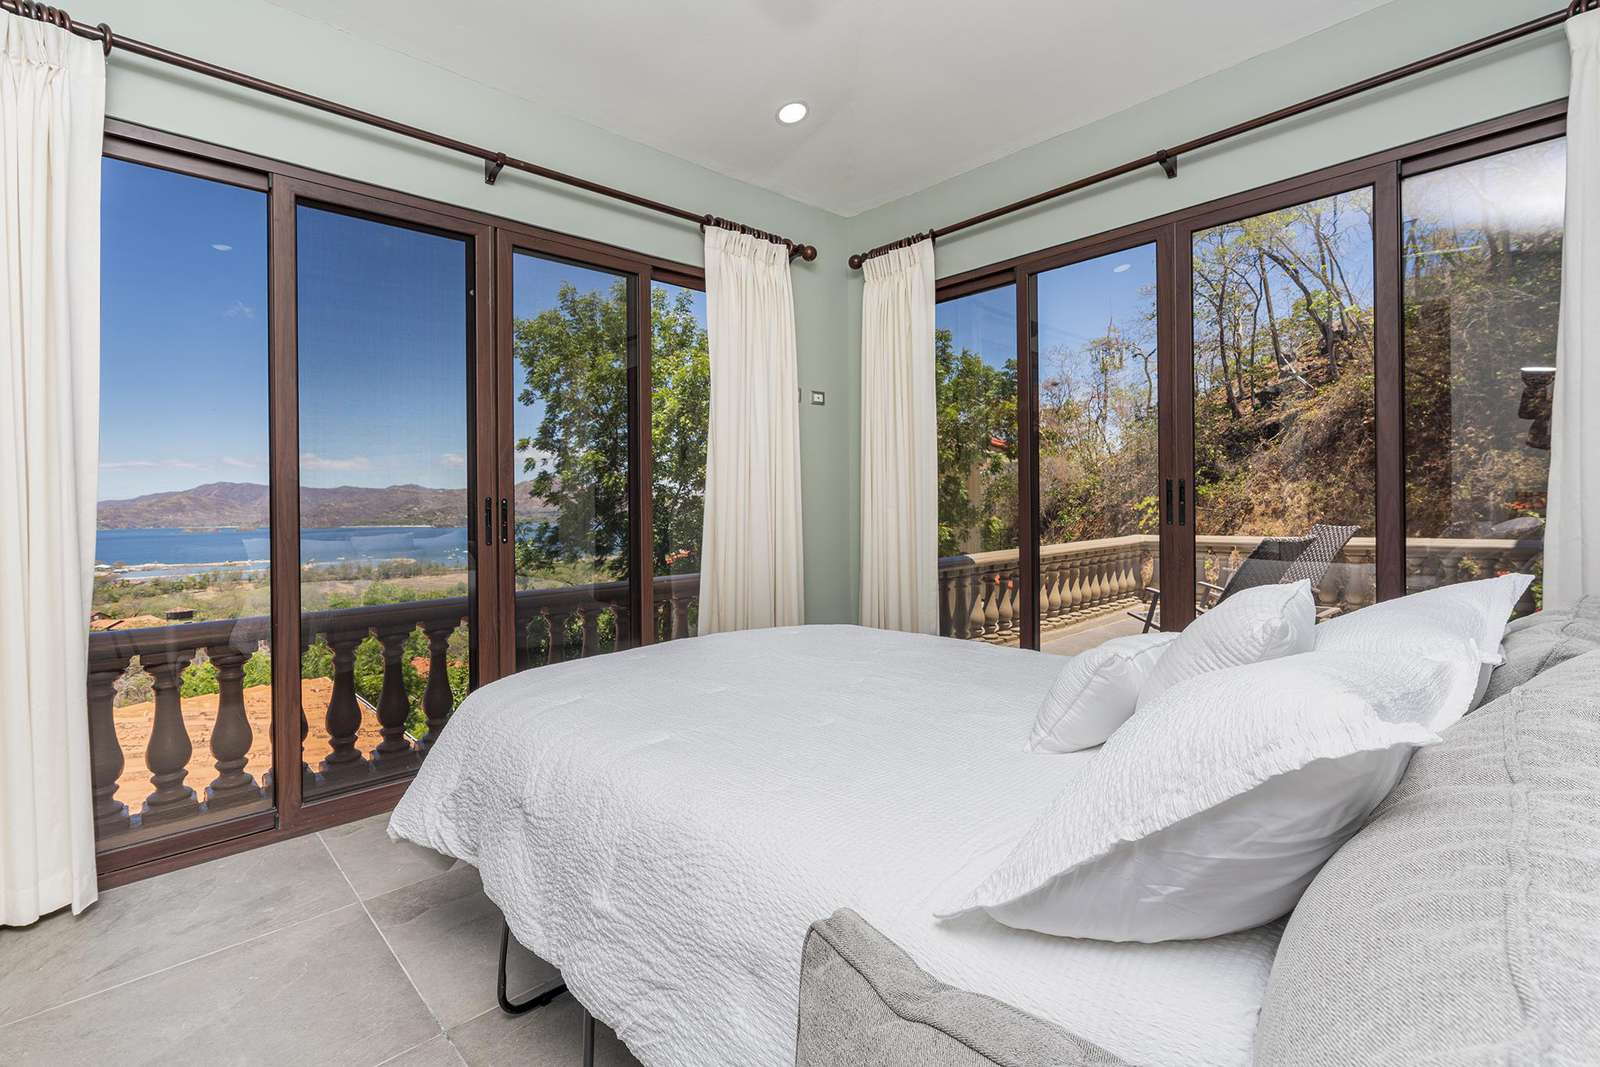 4th guest suite, with comfortable Queen size sleeper sofa bed, private bathroom, mini bar, private ocean view terrace